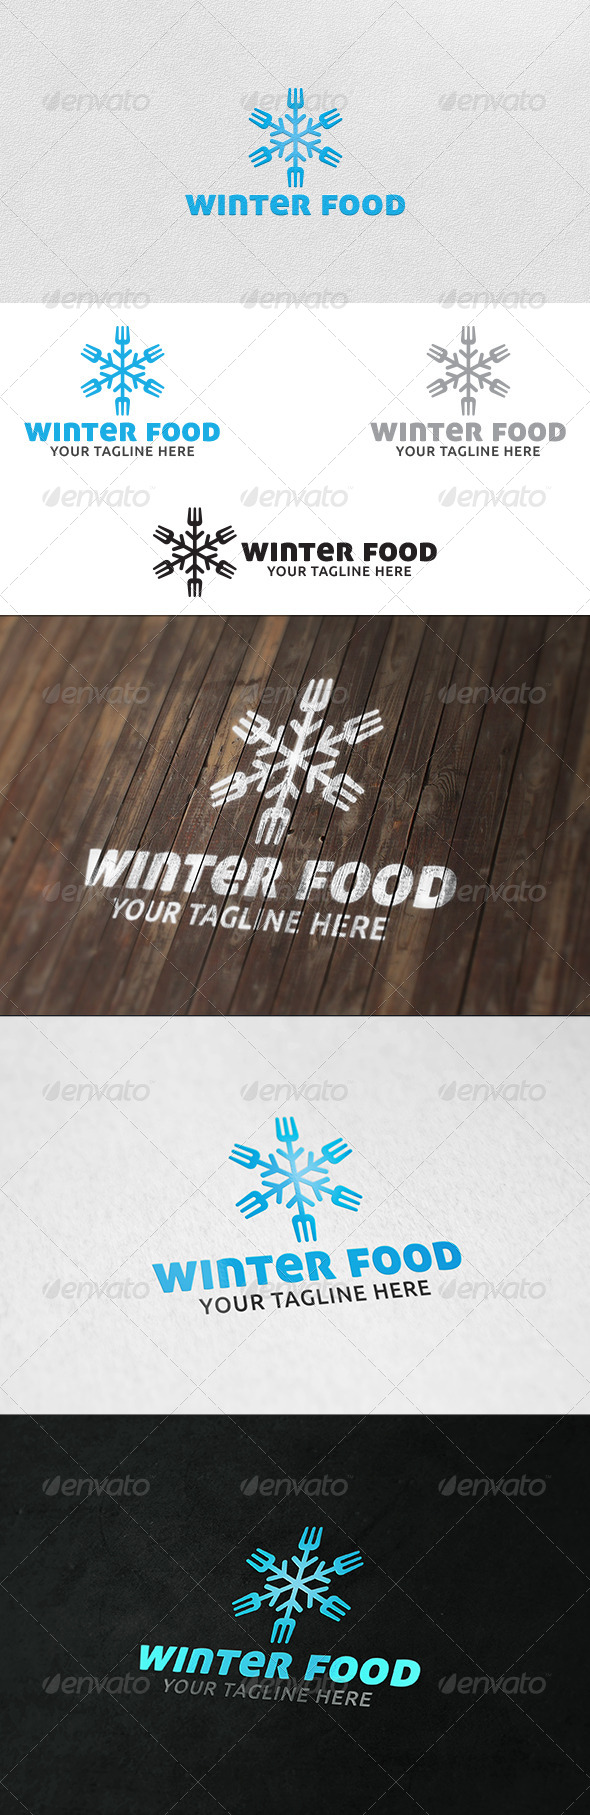 Winter Food - Logo Template